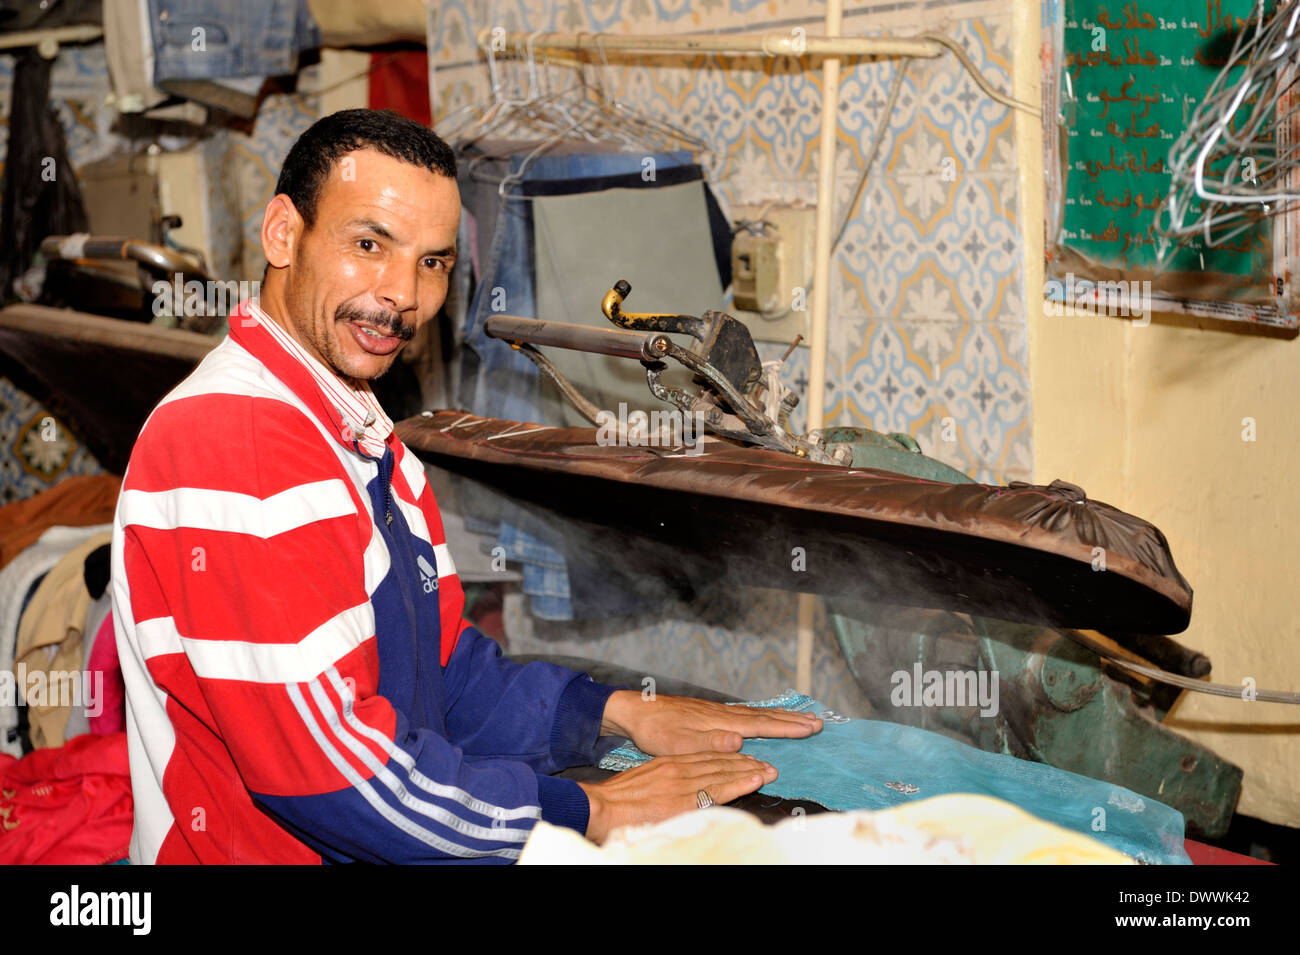 Moroccan man ironing a dress with press in Marrakech souk, Morocco - Stock Image